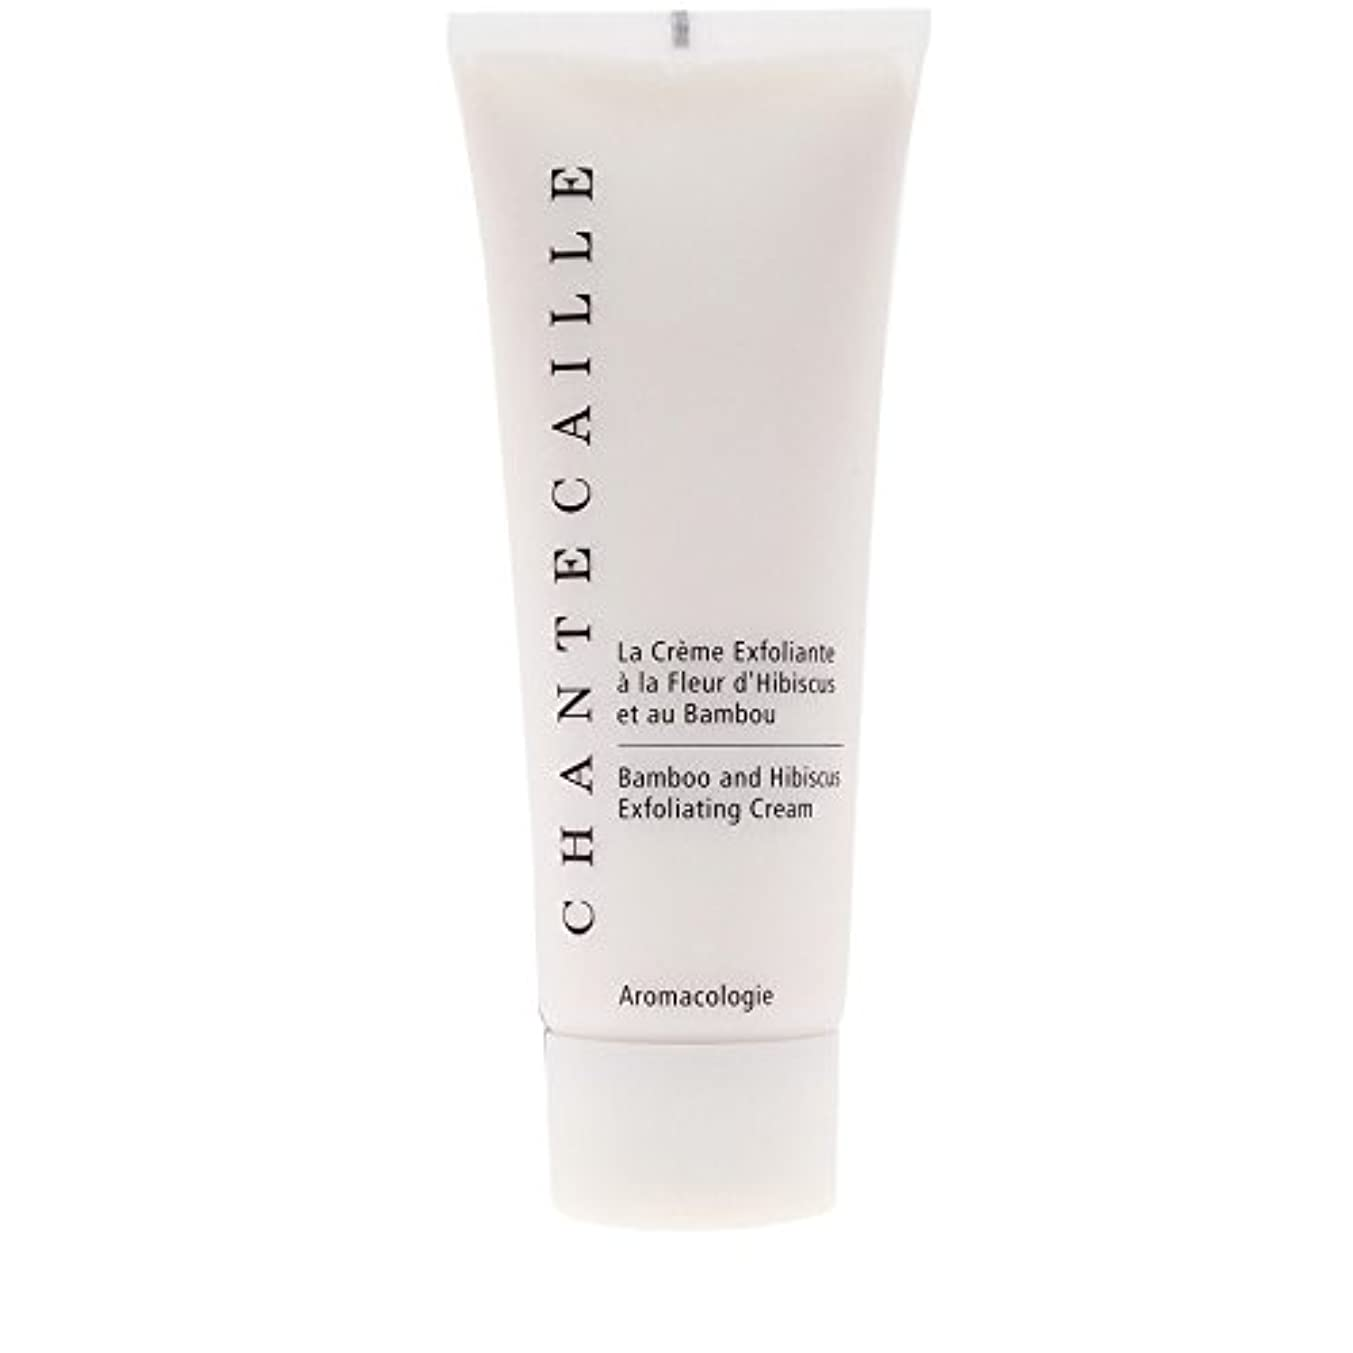 Chantecaille Bamboo and Hibiscus Exfoliating Cream 75ml (Pack of 6) - シャンテカイユ竹とハイビスカス角質除去クリーム75ミリリットル x6 [並行輸入品]